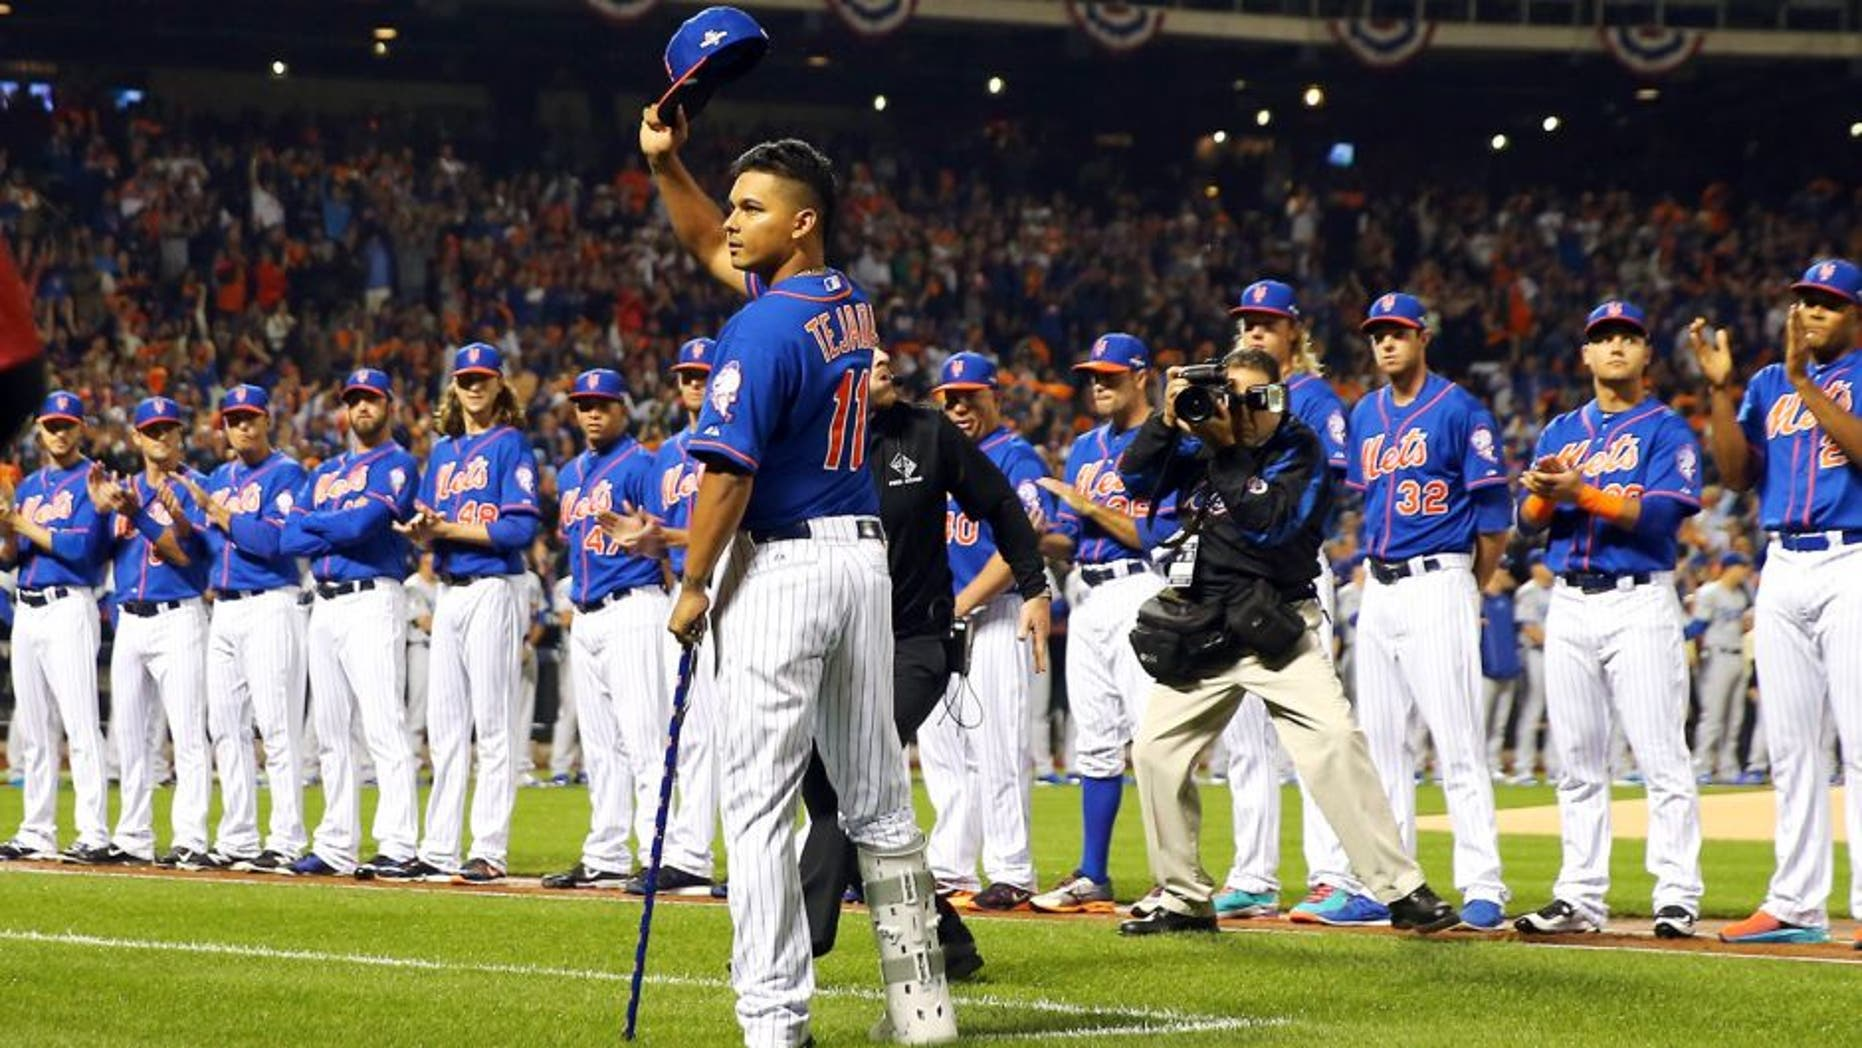 NEW YORK, NY - OCTOBER 12: An injured Ruben Tejada #11 of the New York Mets waves to the crowd prior to game three of the National League Division Series against the Los Angeles Dodgers at Citi Field on October 12, 2015 in New York City. (Photo by Elsa/Getty Images)